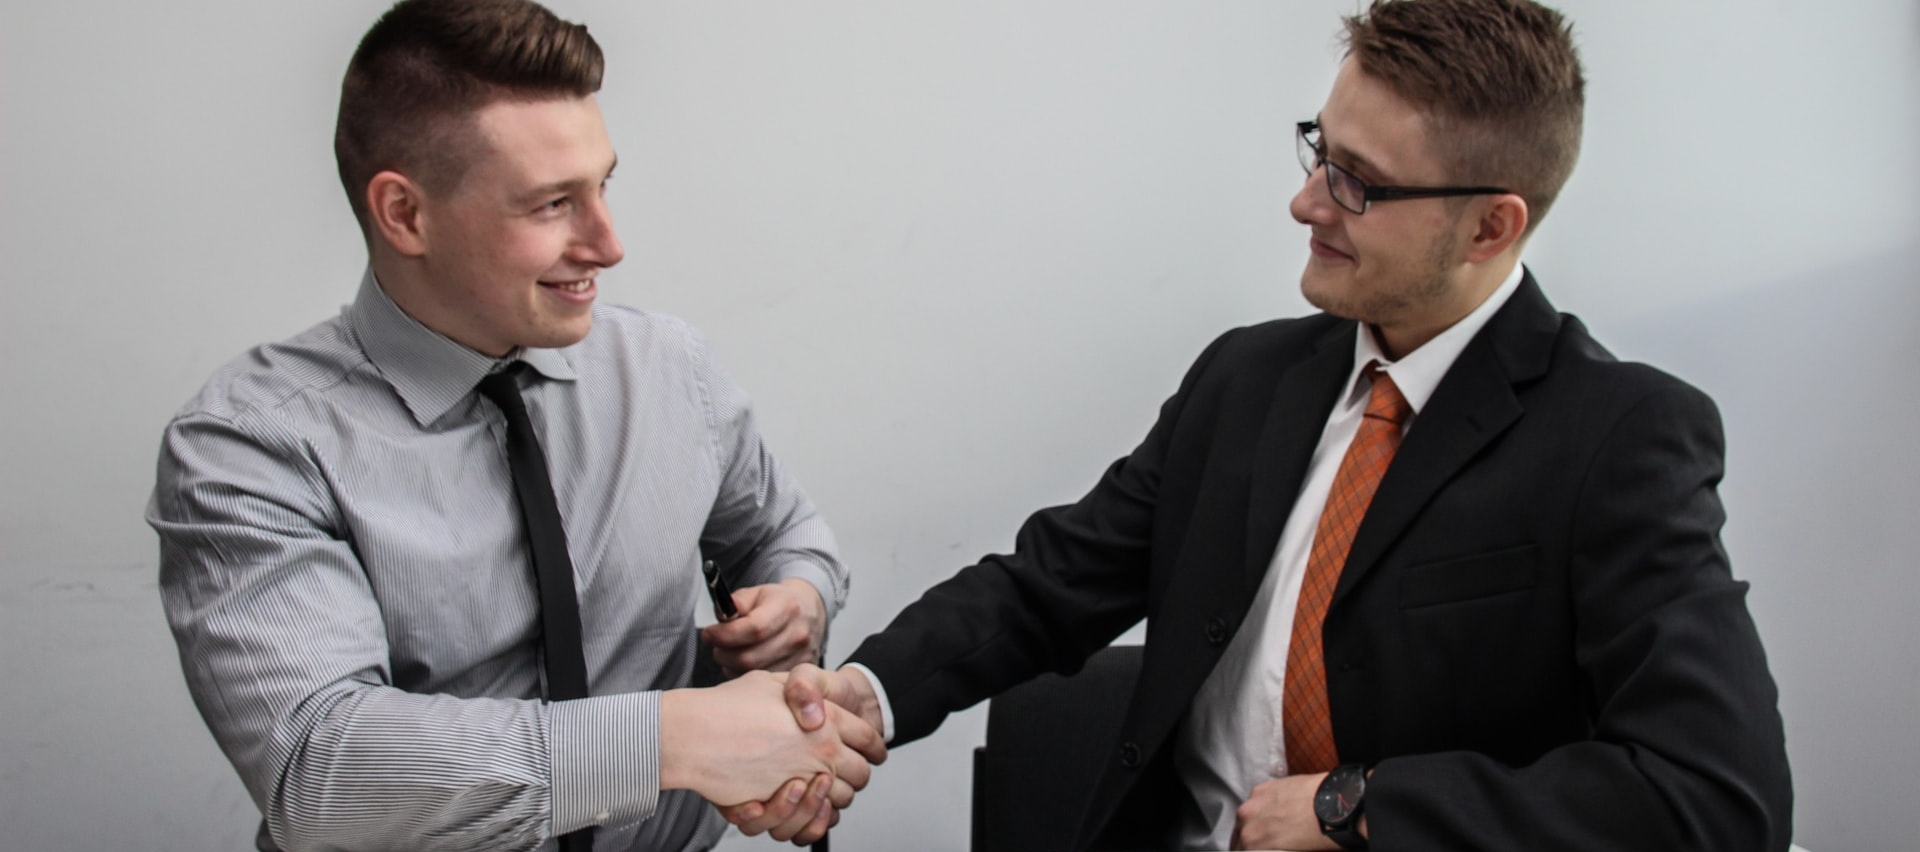 How to Negotiate Salary for Your First Job